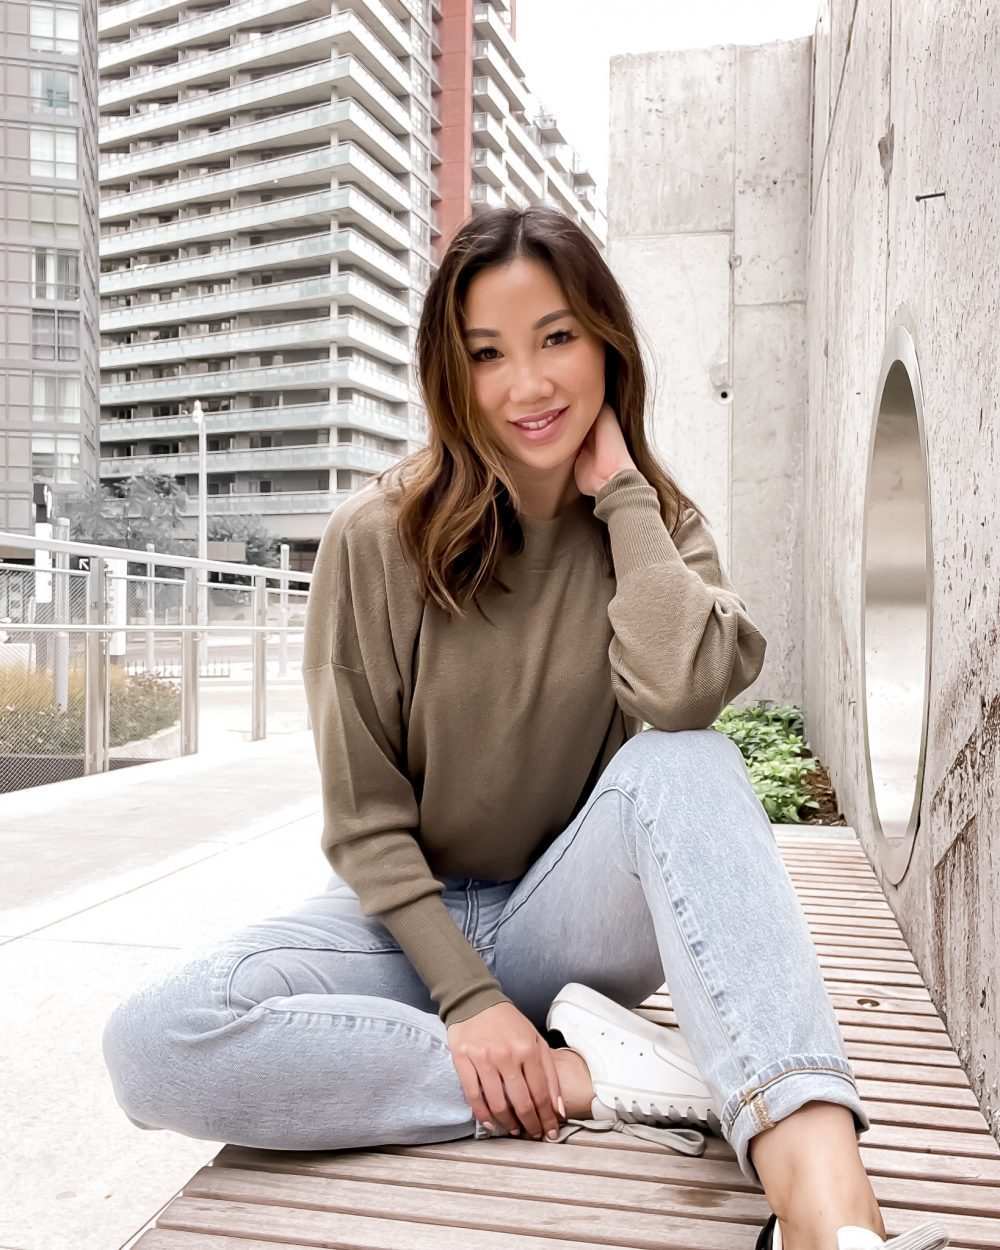 Everyday casual outfit idea for fall - jeans and green sweater from Ever New